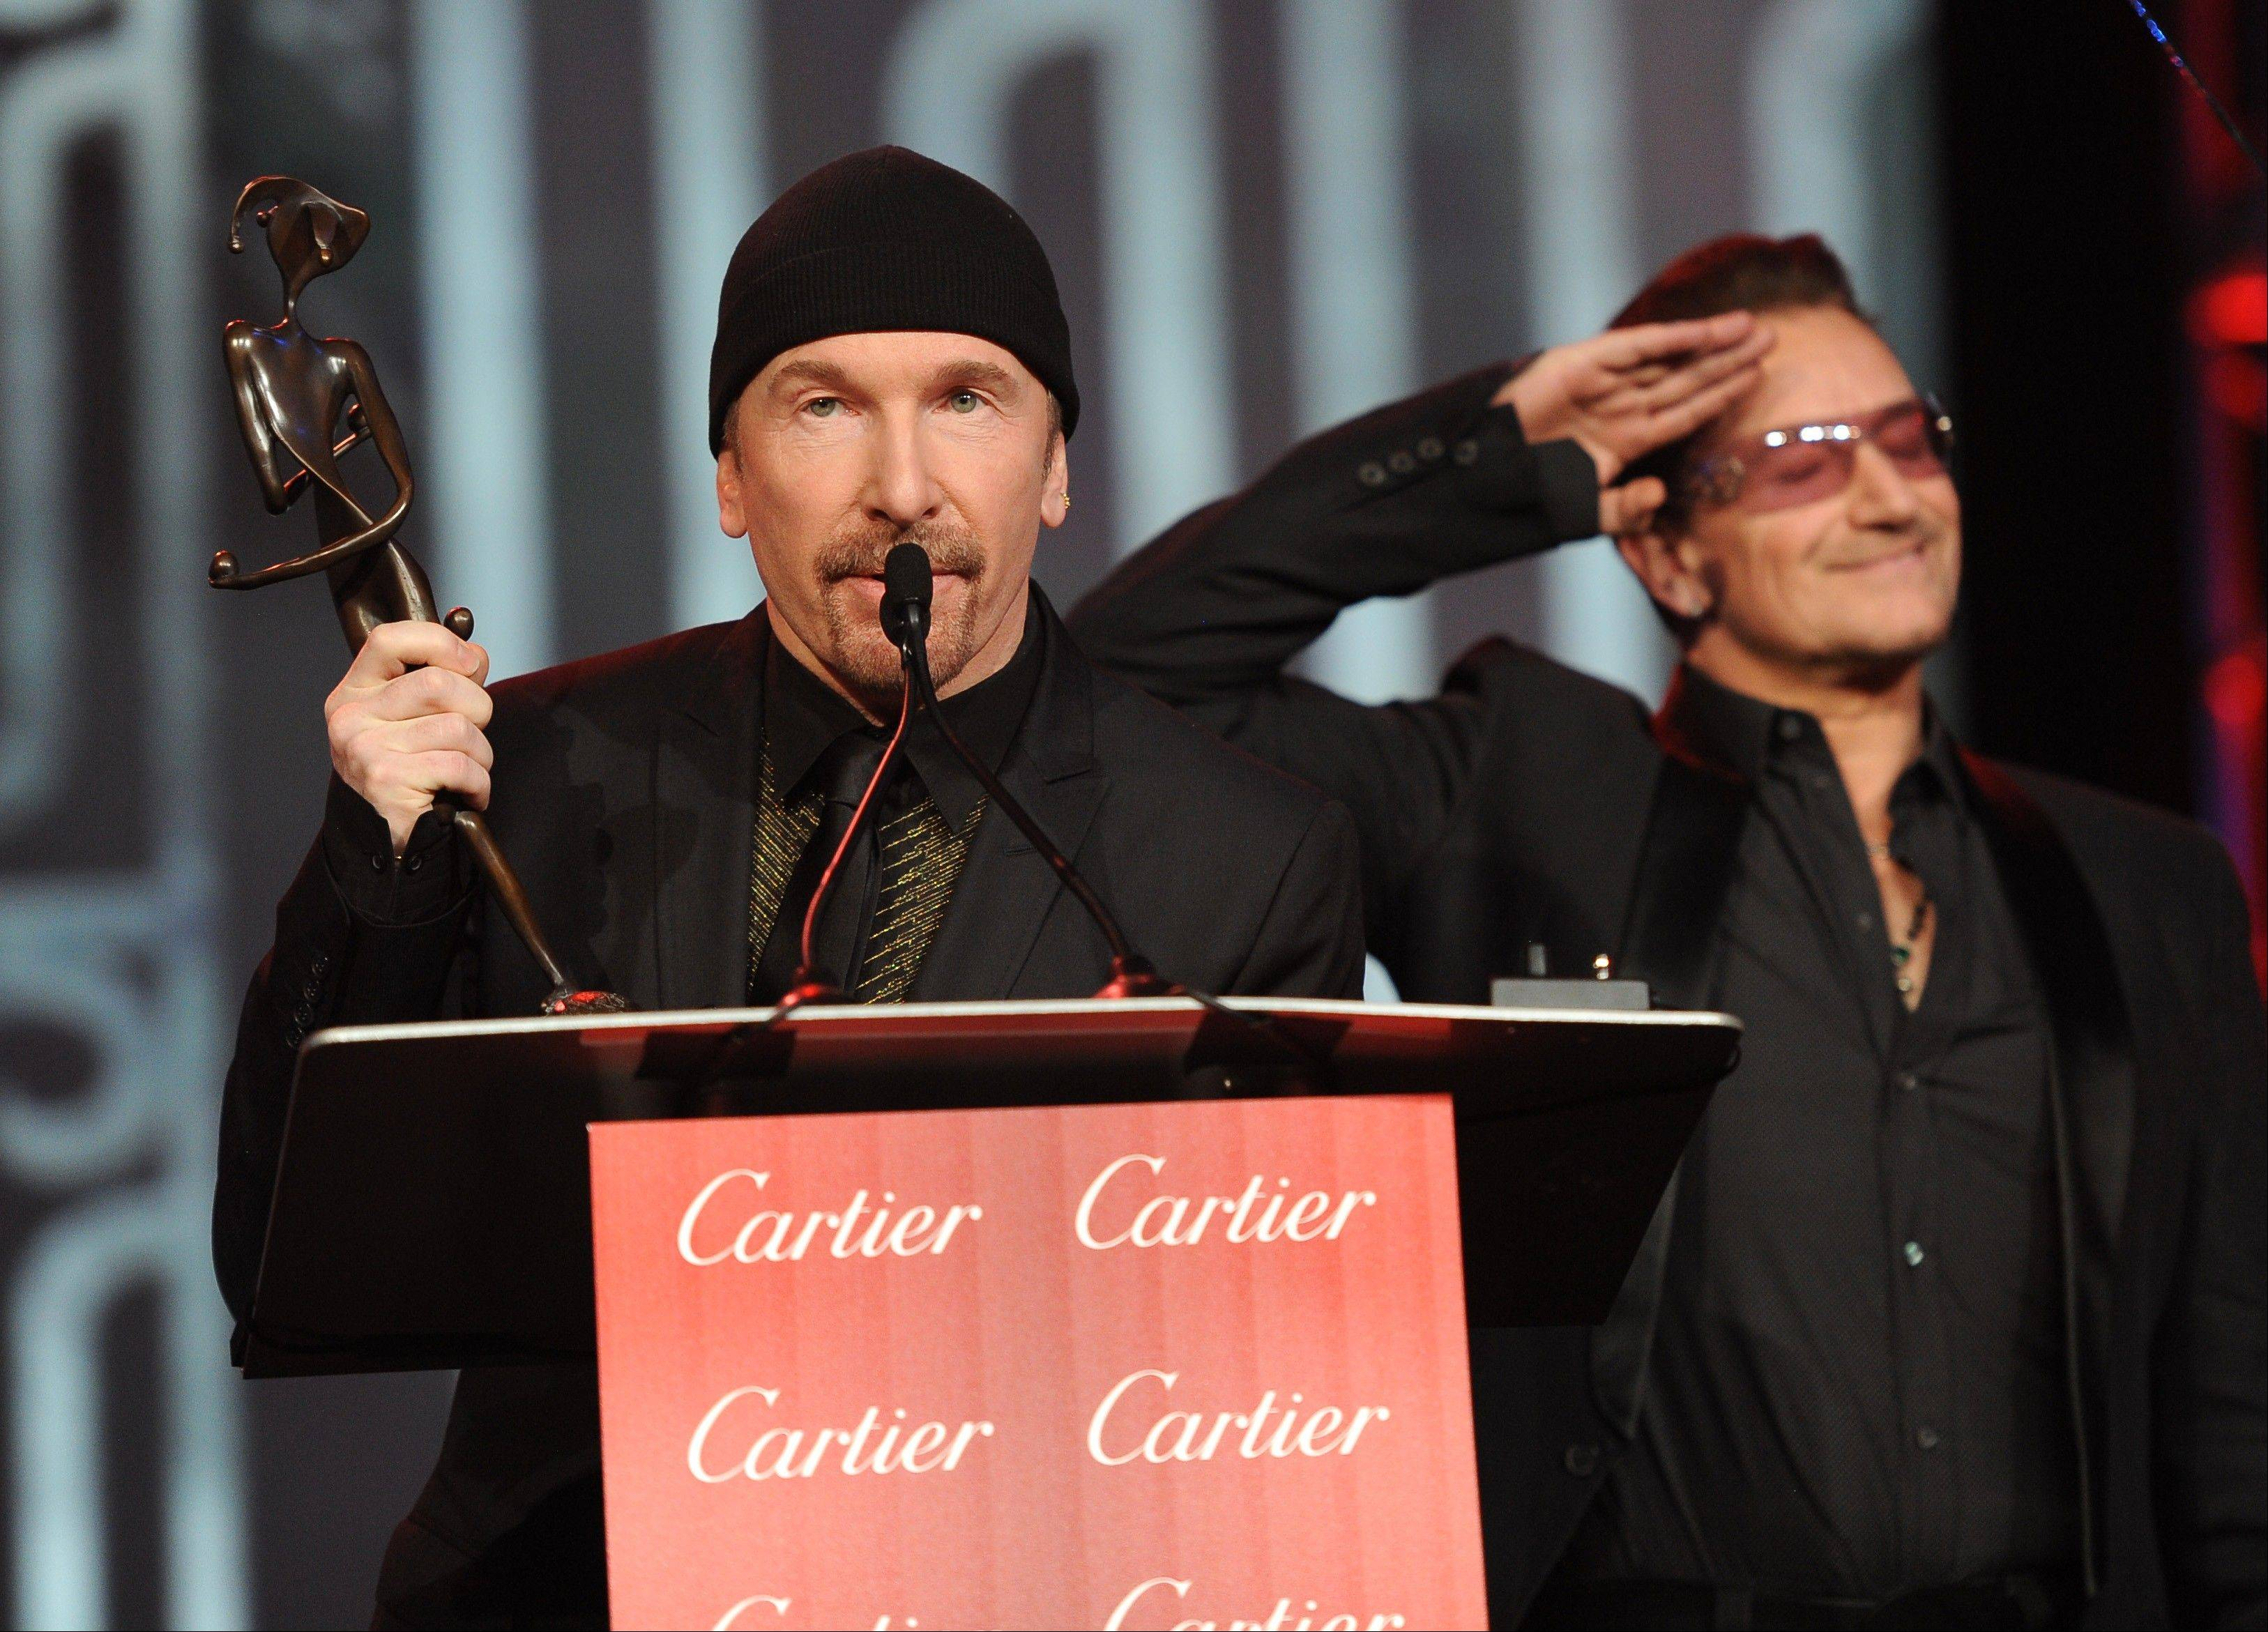 Bono, right, and The Edge, of musical group U2, accept the Sonny Bono Visionary Award at the Palm Springs International Film Festival Awards Gala at the Palm Springs Convention Center on Saturday in Palm Springs, Calif.